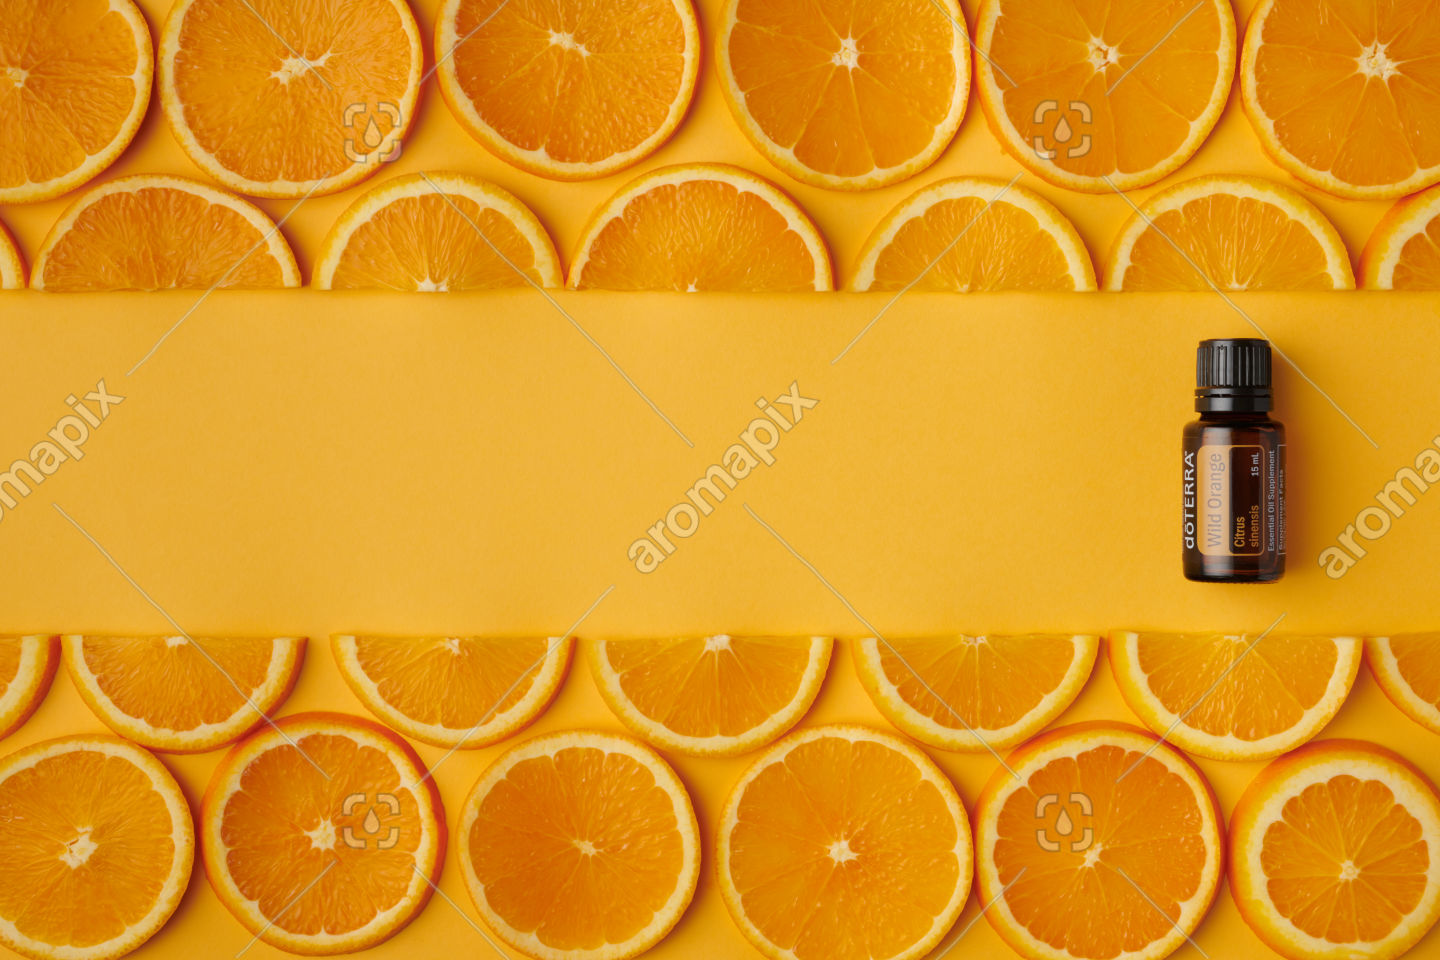 doTERRA Wild Orange product and orange slices on orange background